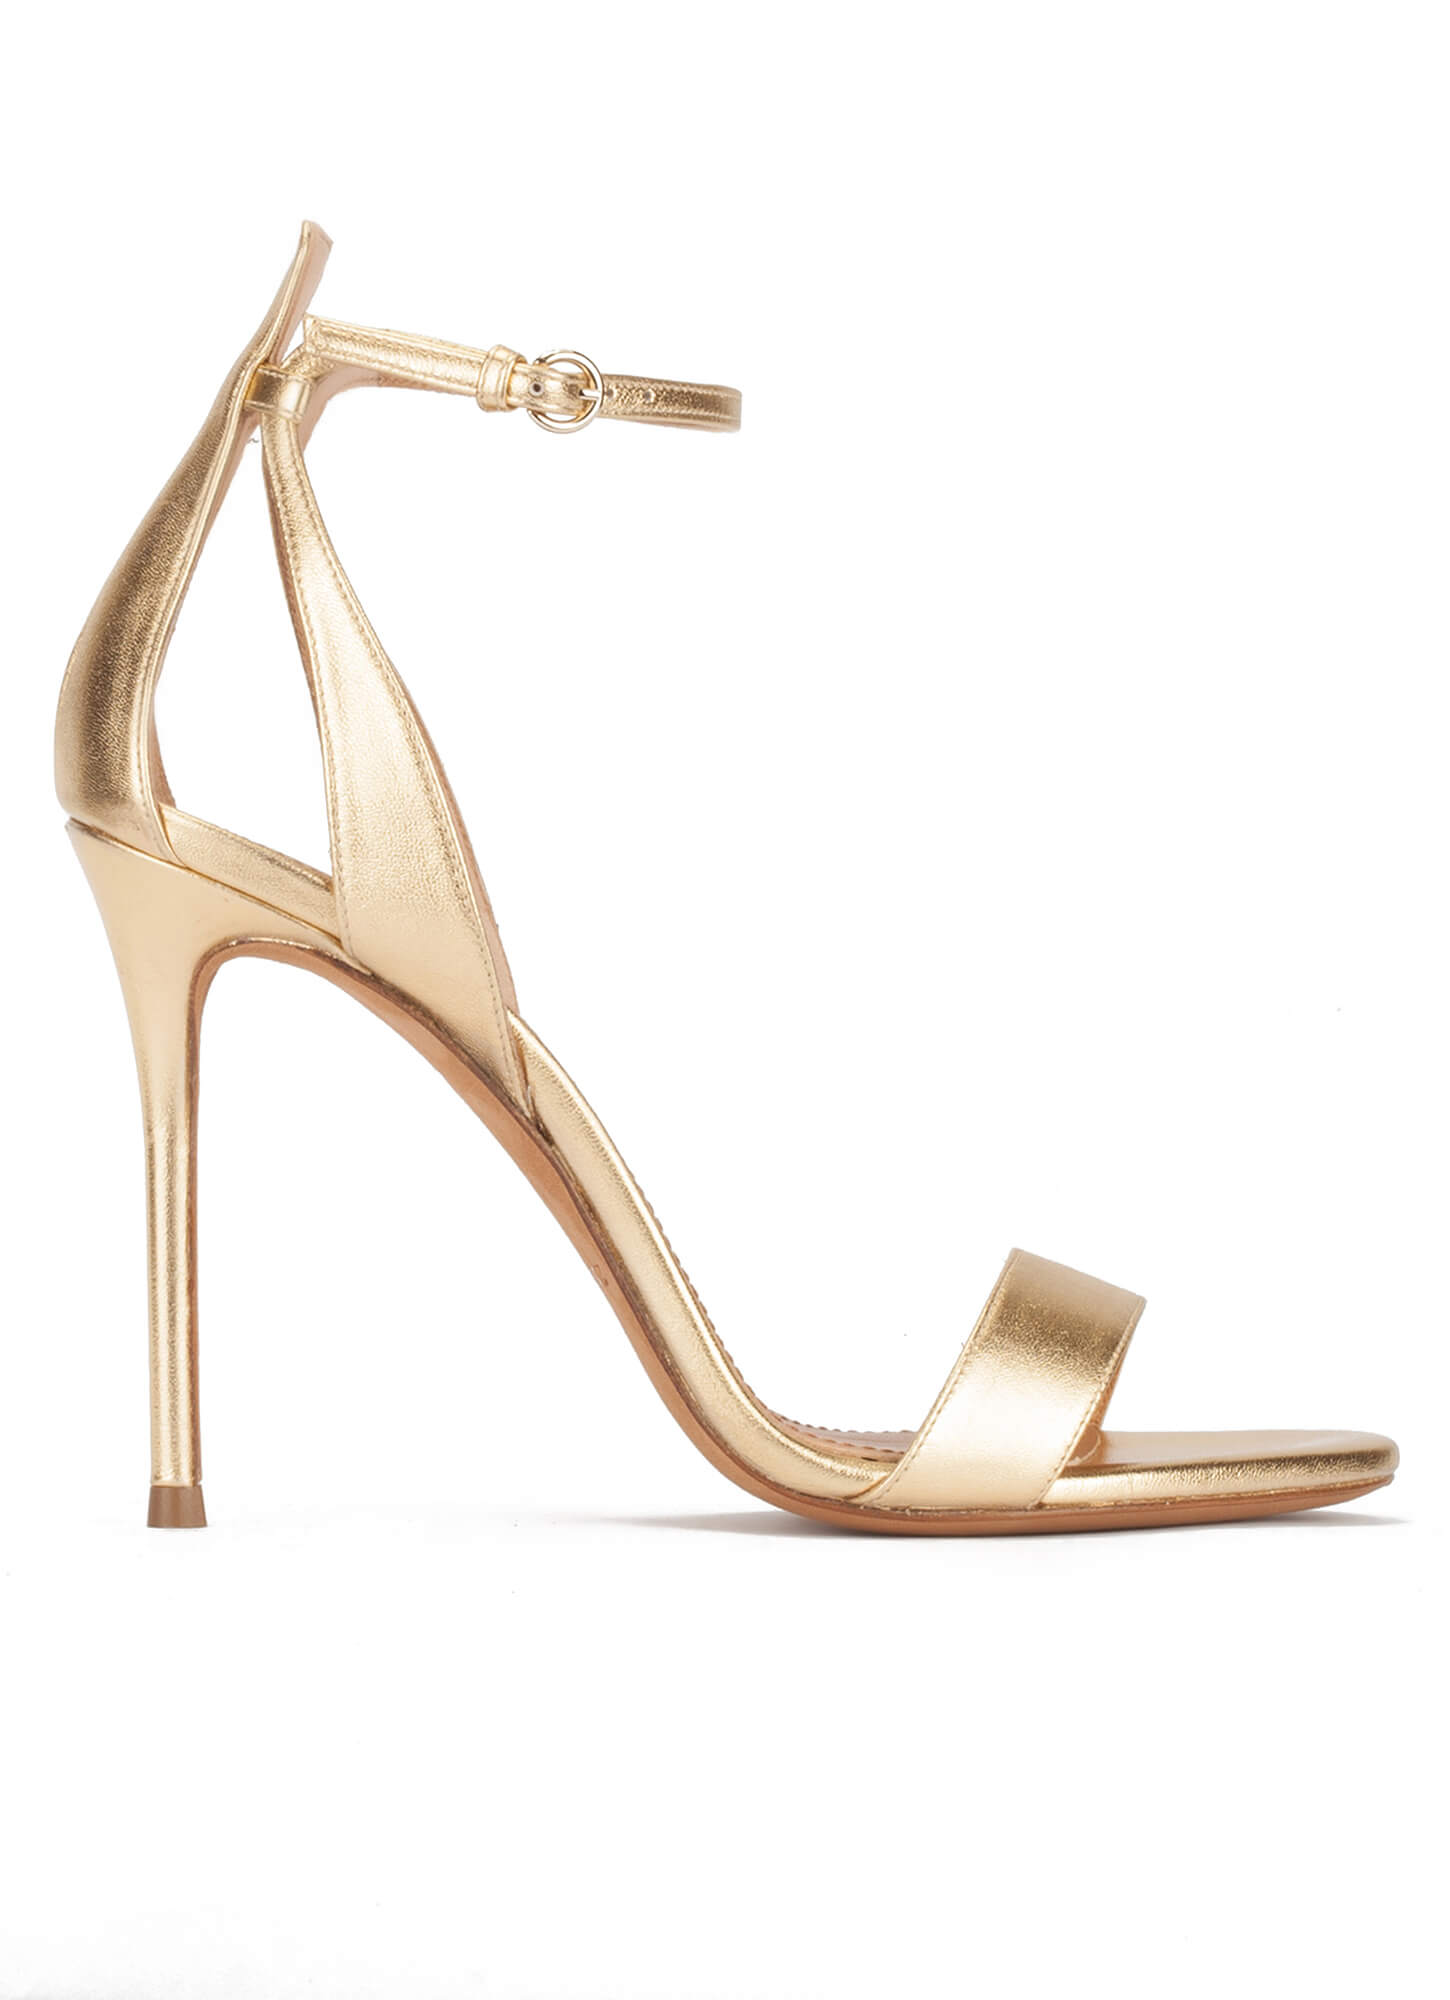 a5cedcd803 Ankle-strap high heeled sandals in gold metallic leather . PURA LOPEZ